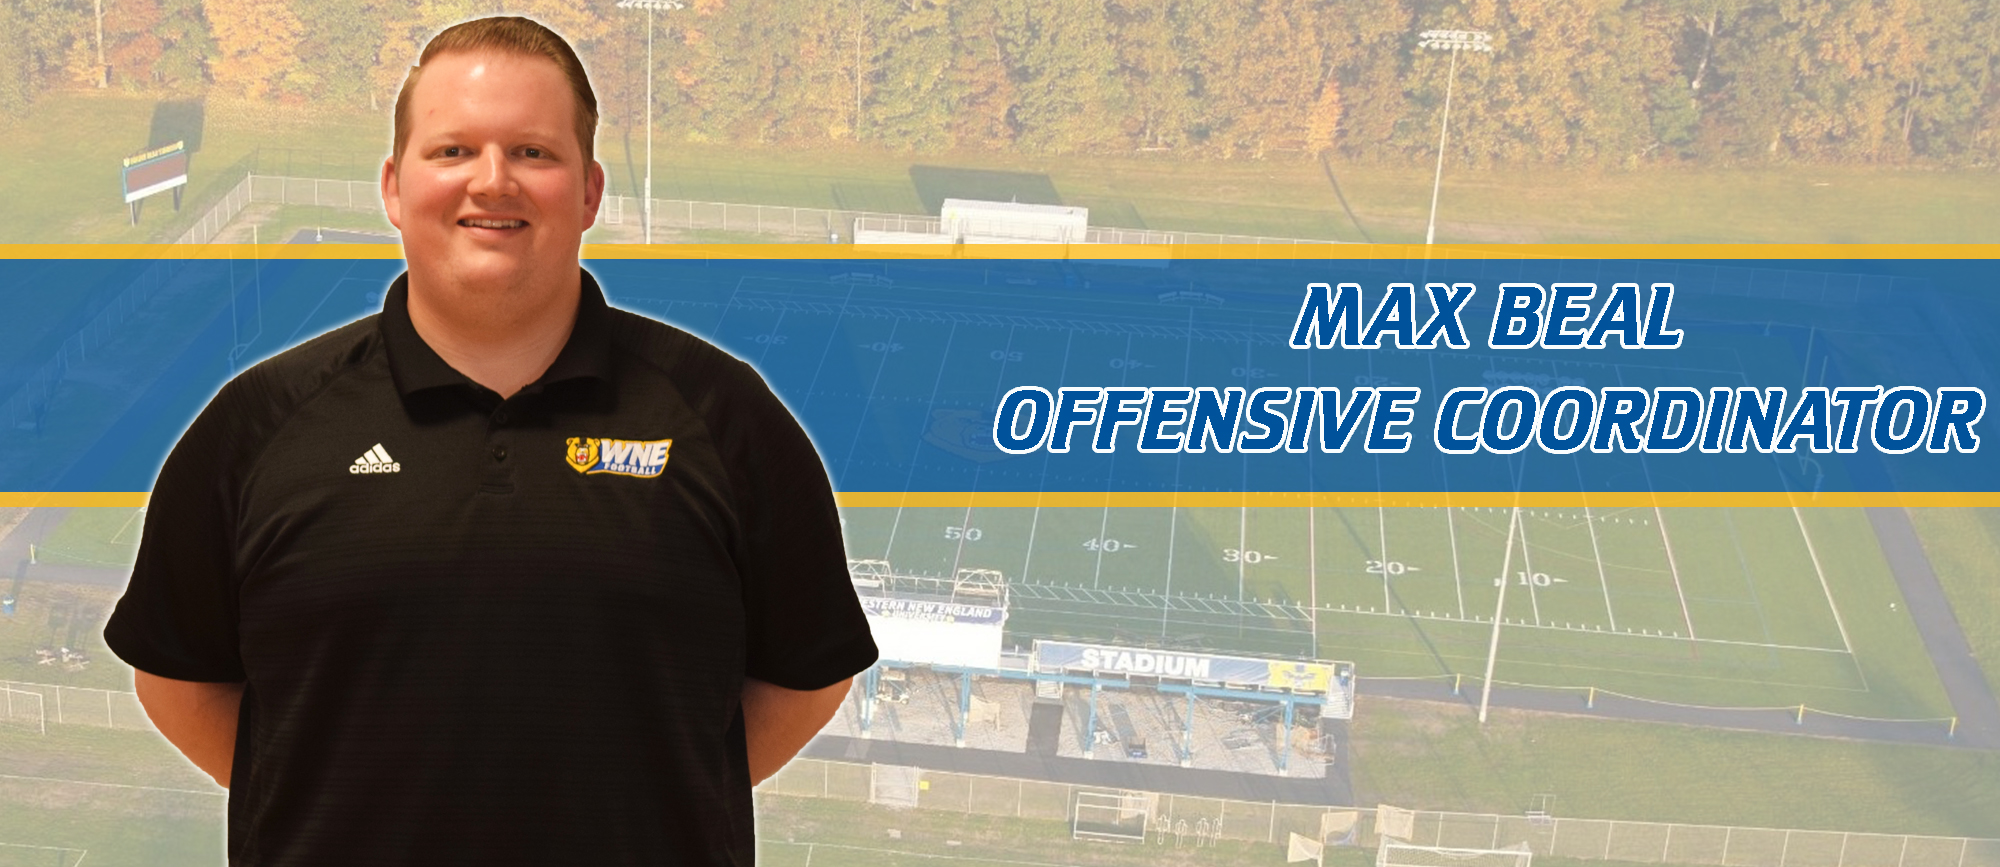 Max Beal Returns to Western New England as Offensive Coordinator